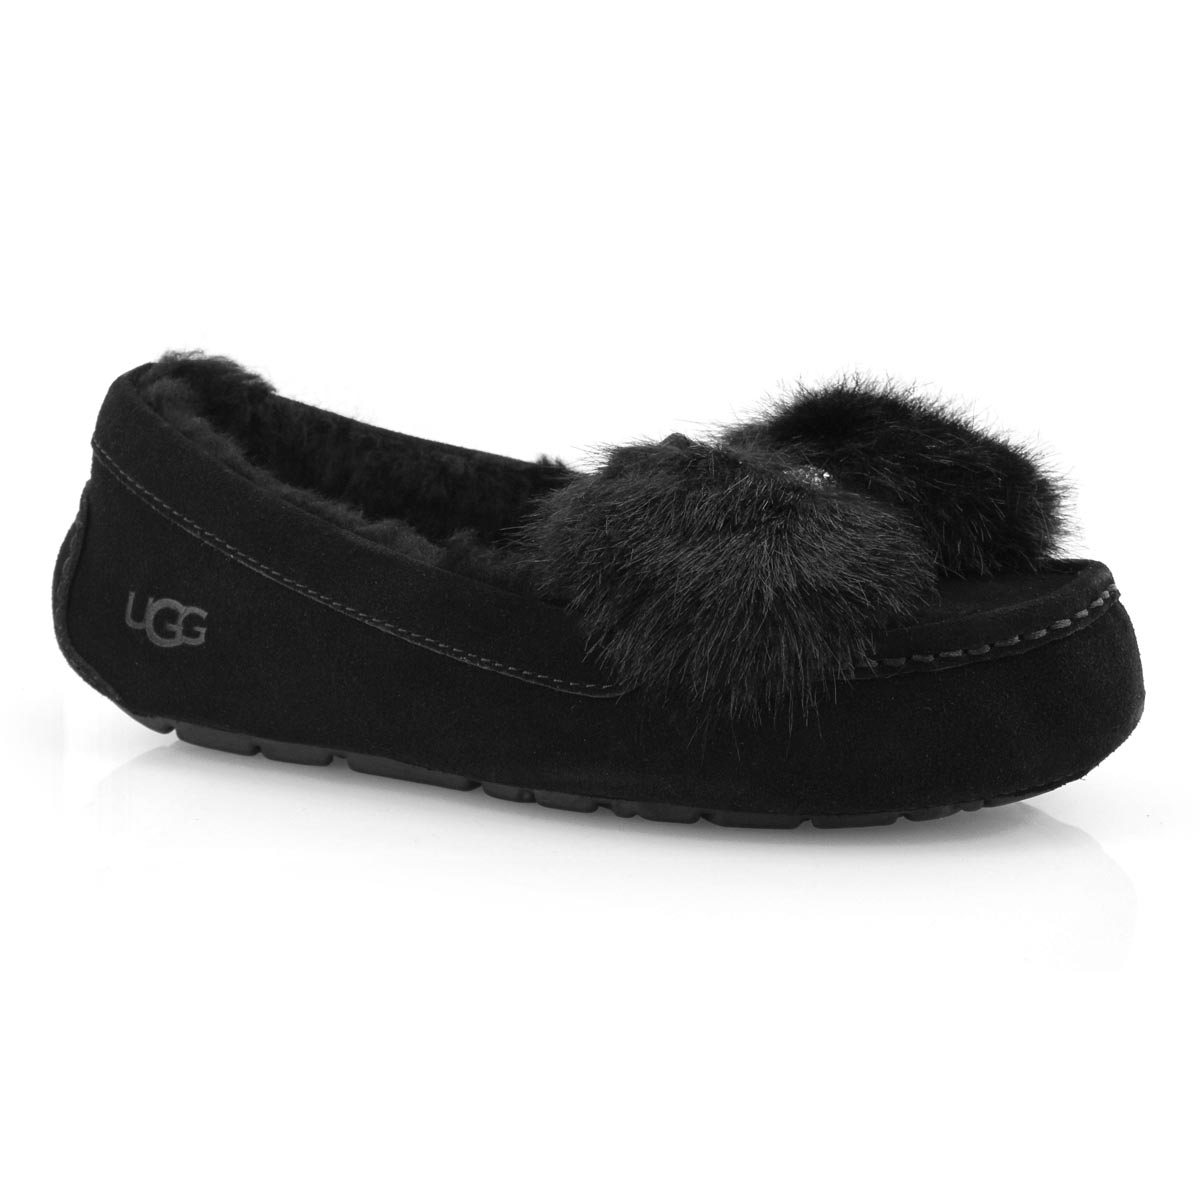 Lds Ansley Puff Bow black moccasin